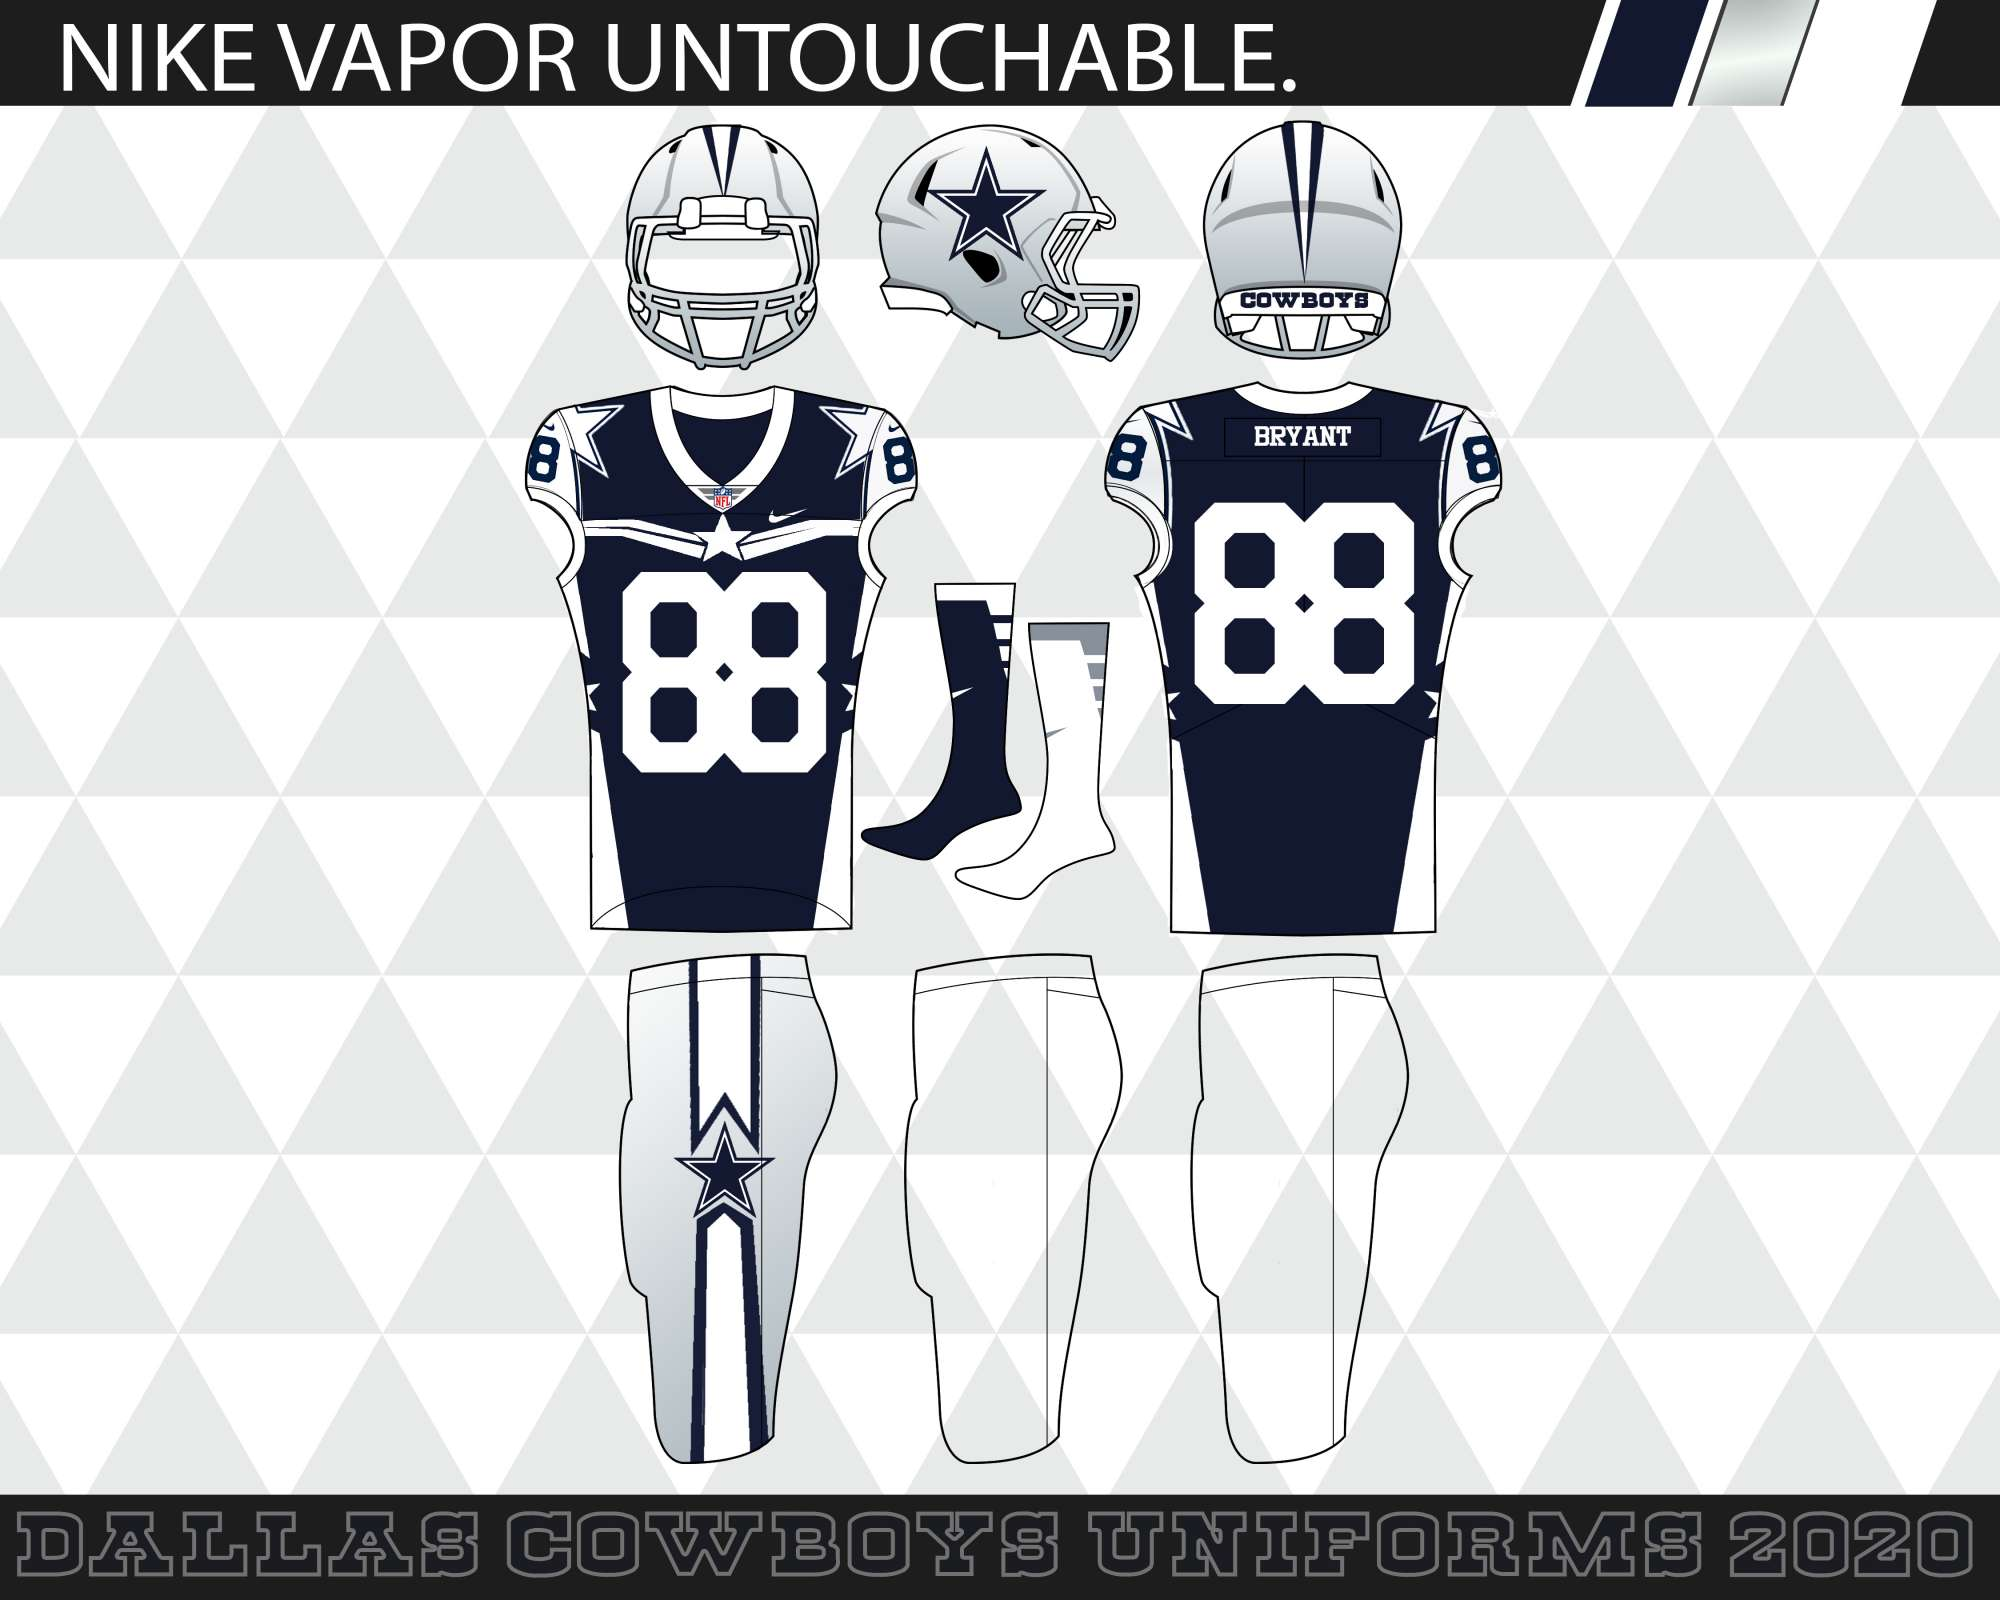 Dallas Cowboys 2020 Schedule.The Dallas Cowboys 2020 Elite Uniforms Concepts Chris